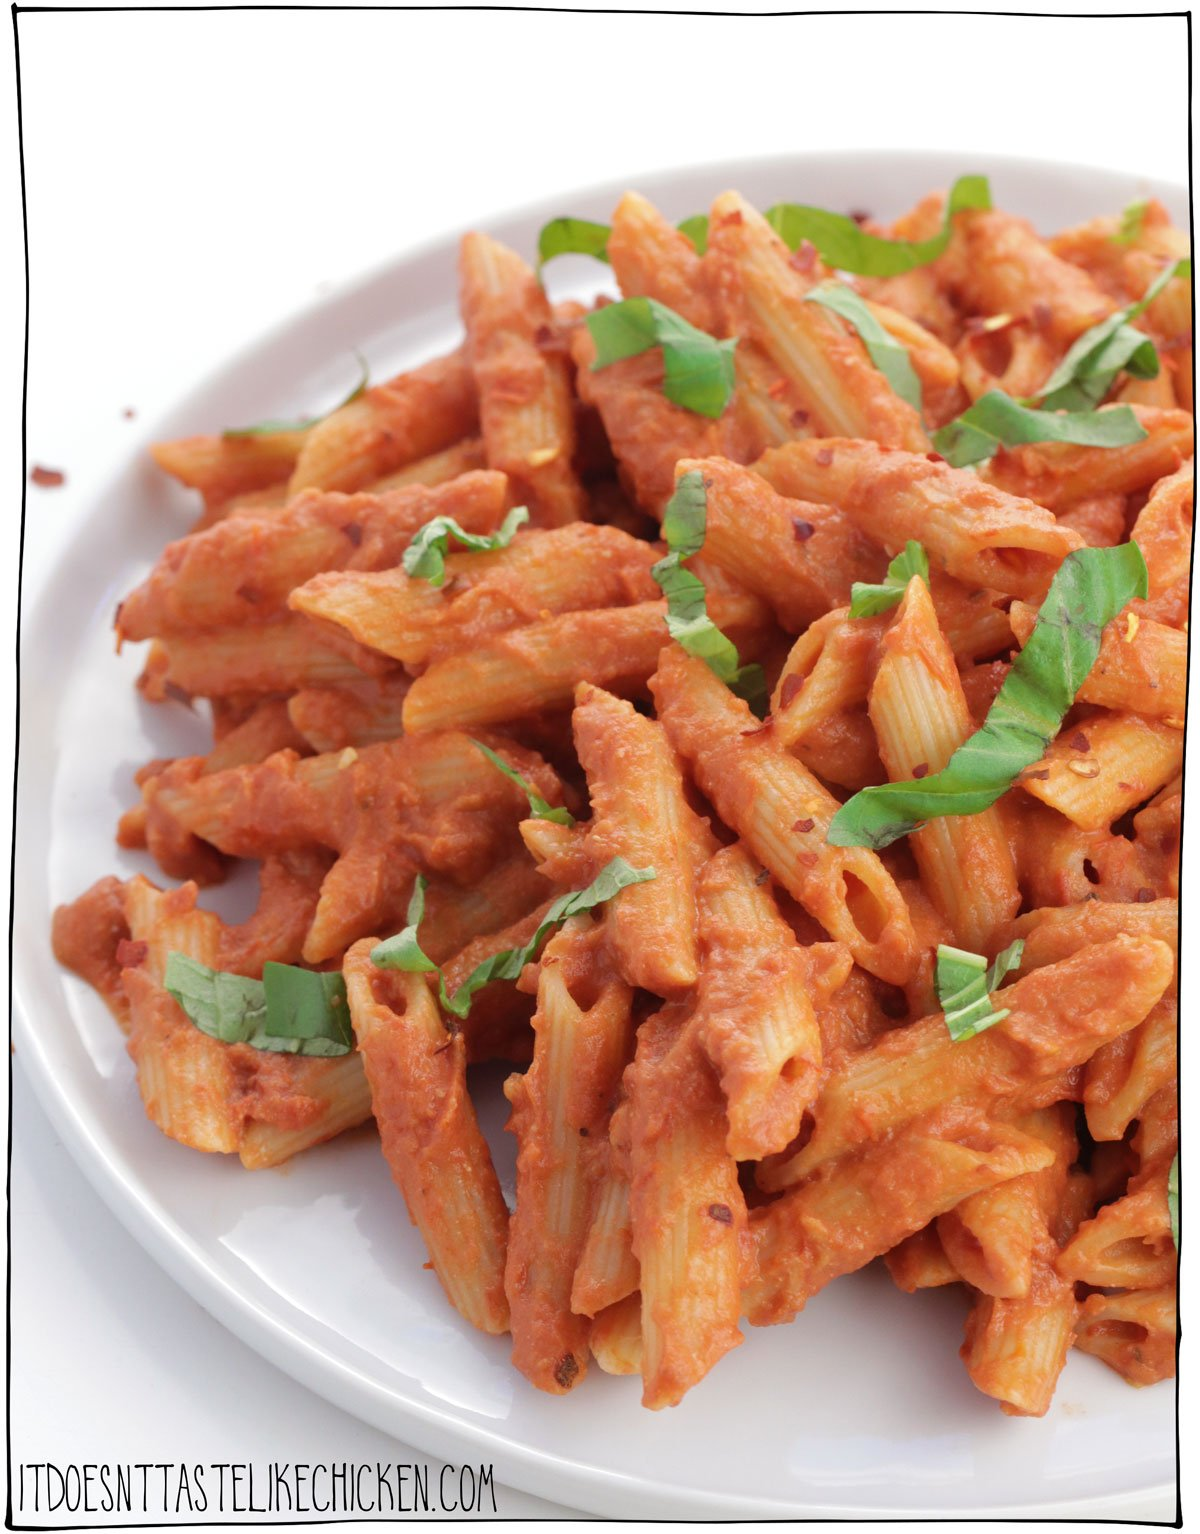 Easy Vegan Penne alla Vodka! Just 20 minutes to prepare, and only 10 ingredients! This pasta is rich, creamy, and oh so delicious. It can be made fresh, or the sauce can be prepared ahead of time and frozen for later. The perfect simple pasta dish for a fancy night in. #itdoesnttastelikechicken #veganrecipes